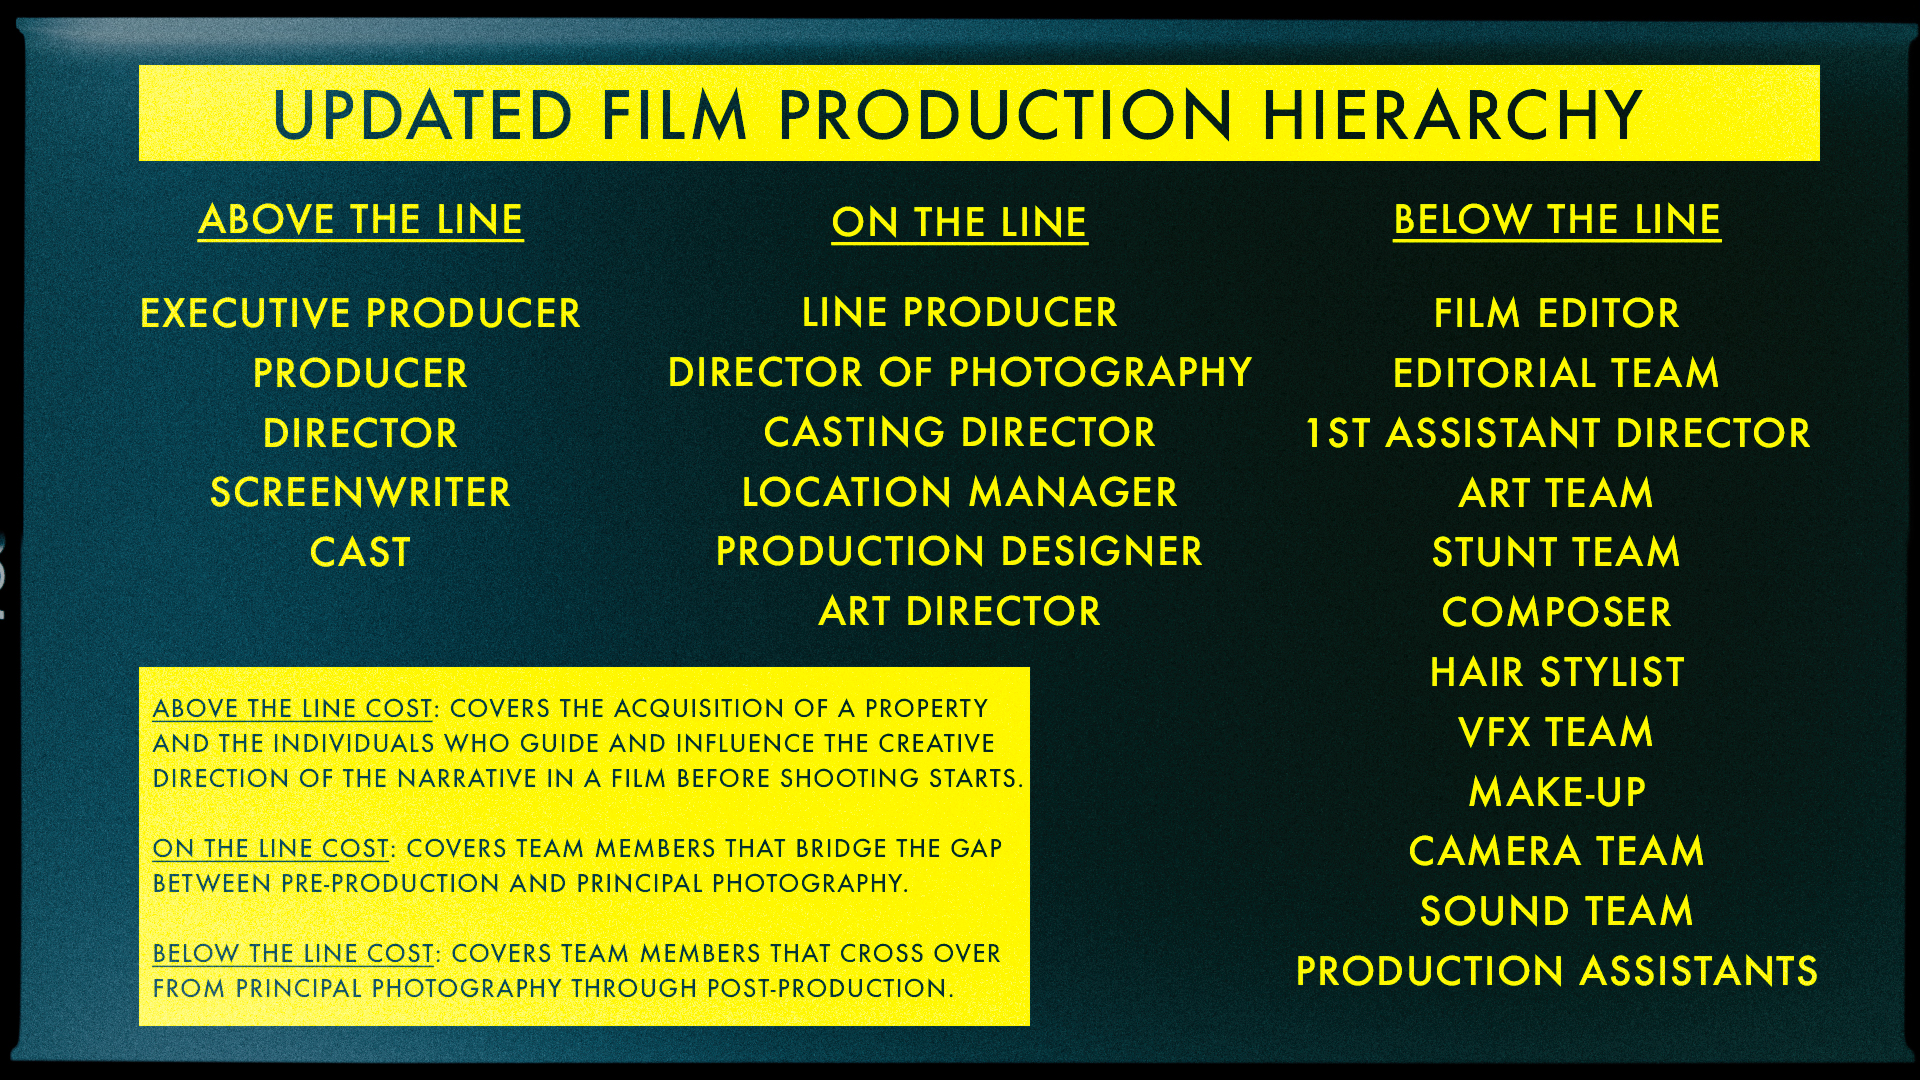 Redefining Above the Line & Below the Line in Film [Graphic